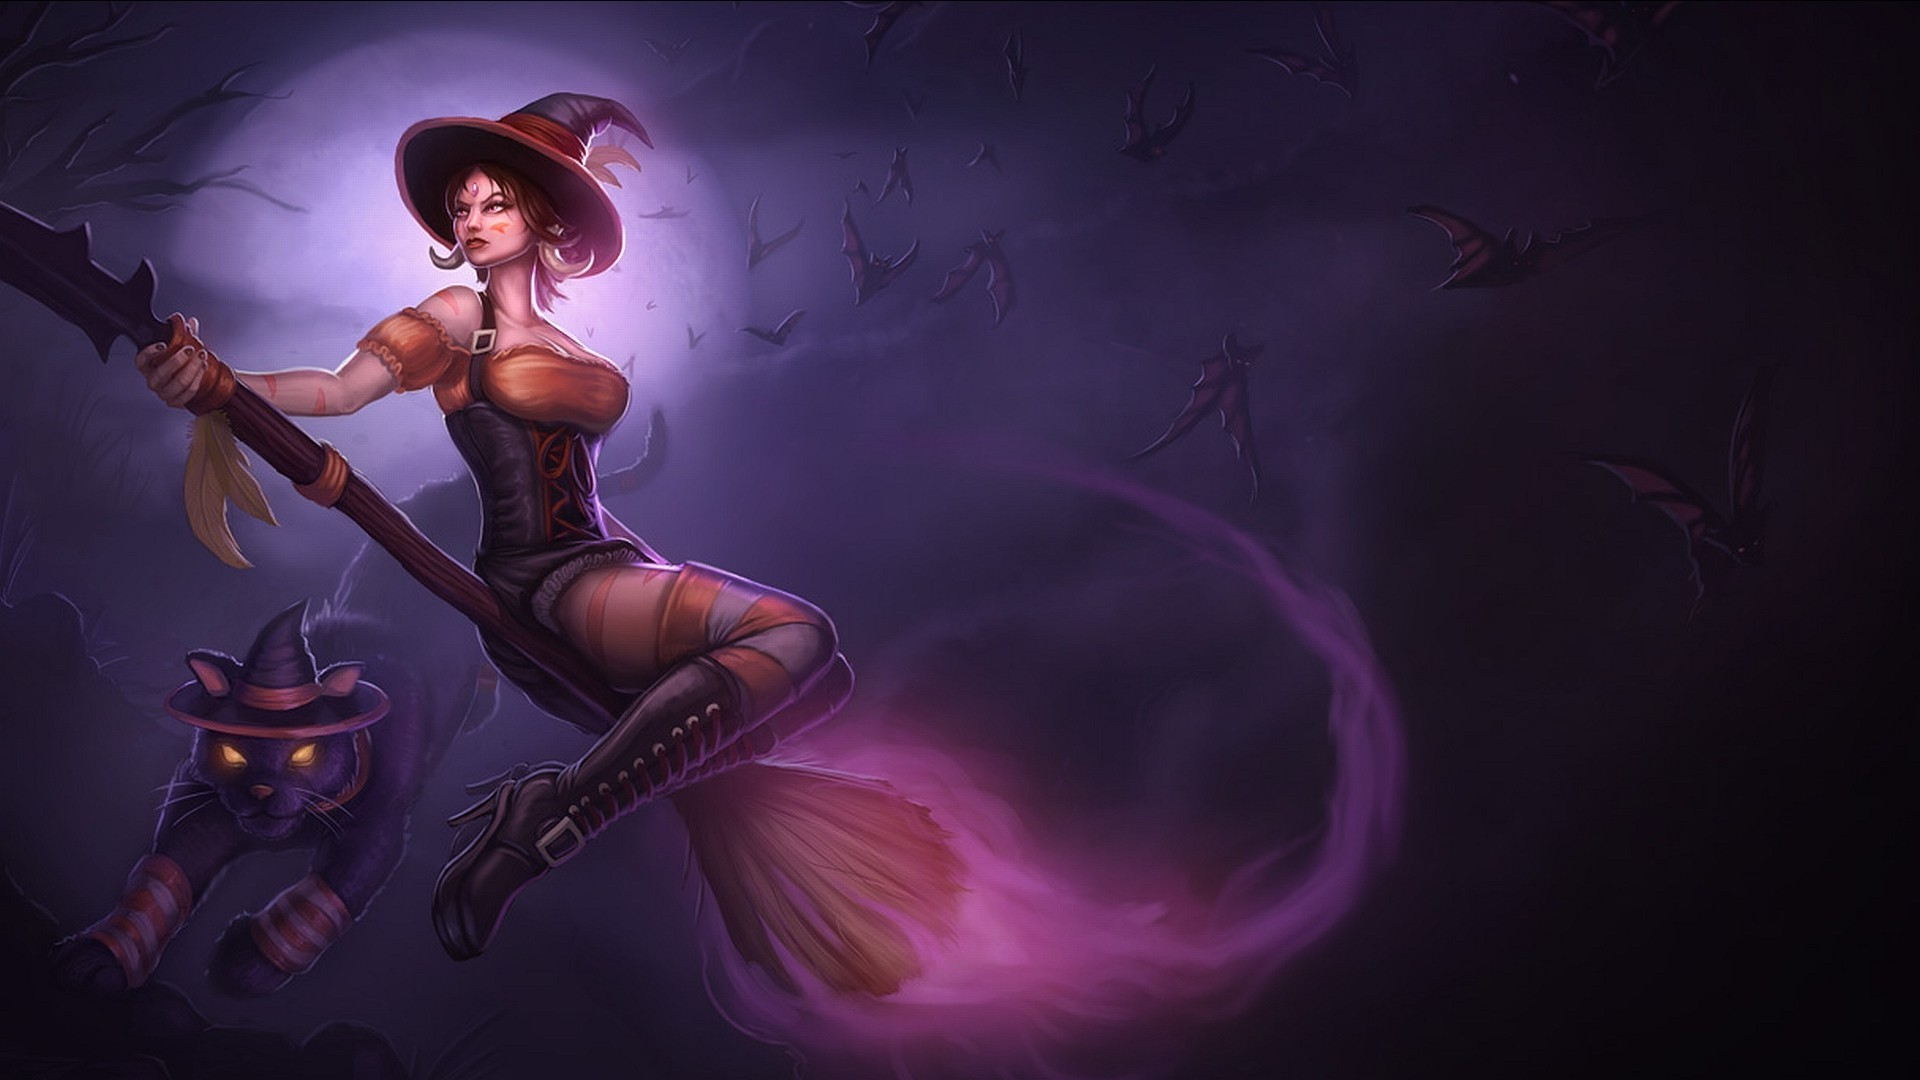 Nidalee League of Legends LoL Game Games 1920x1080 hdweweb4com 1920x1080